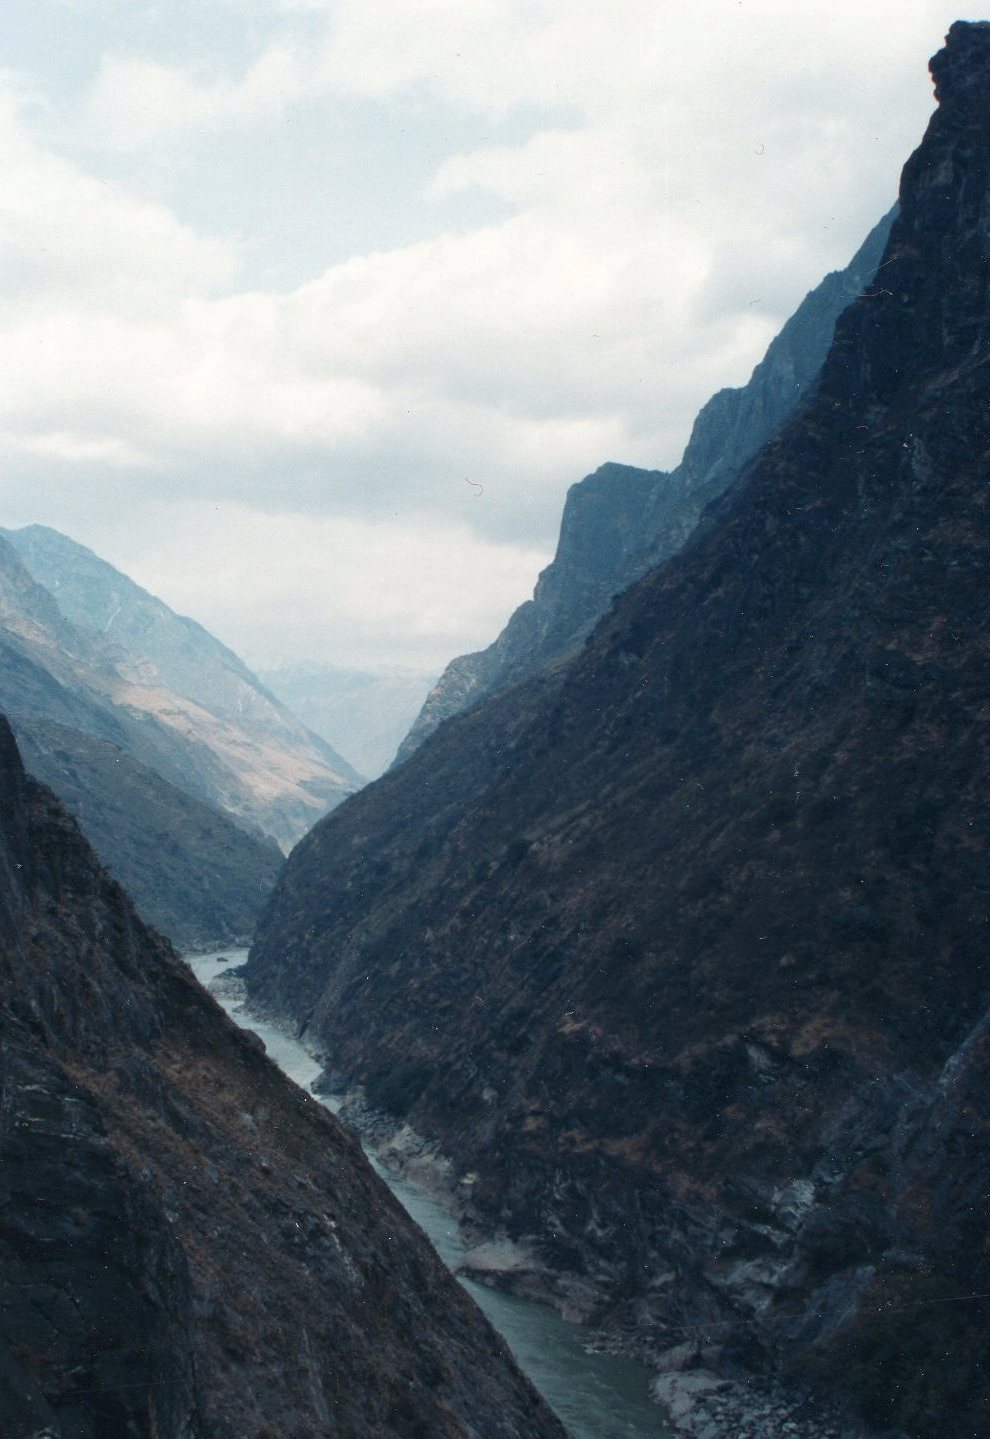 Tiger Leaping Gorge - © William Mackesy